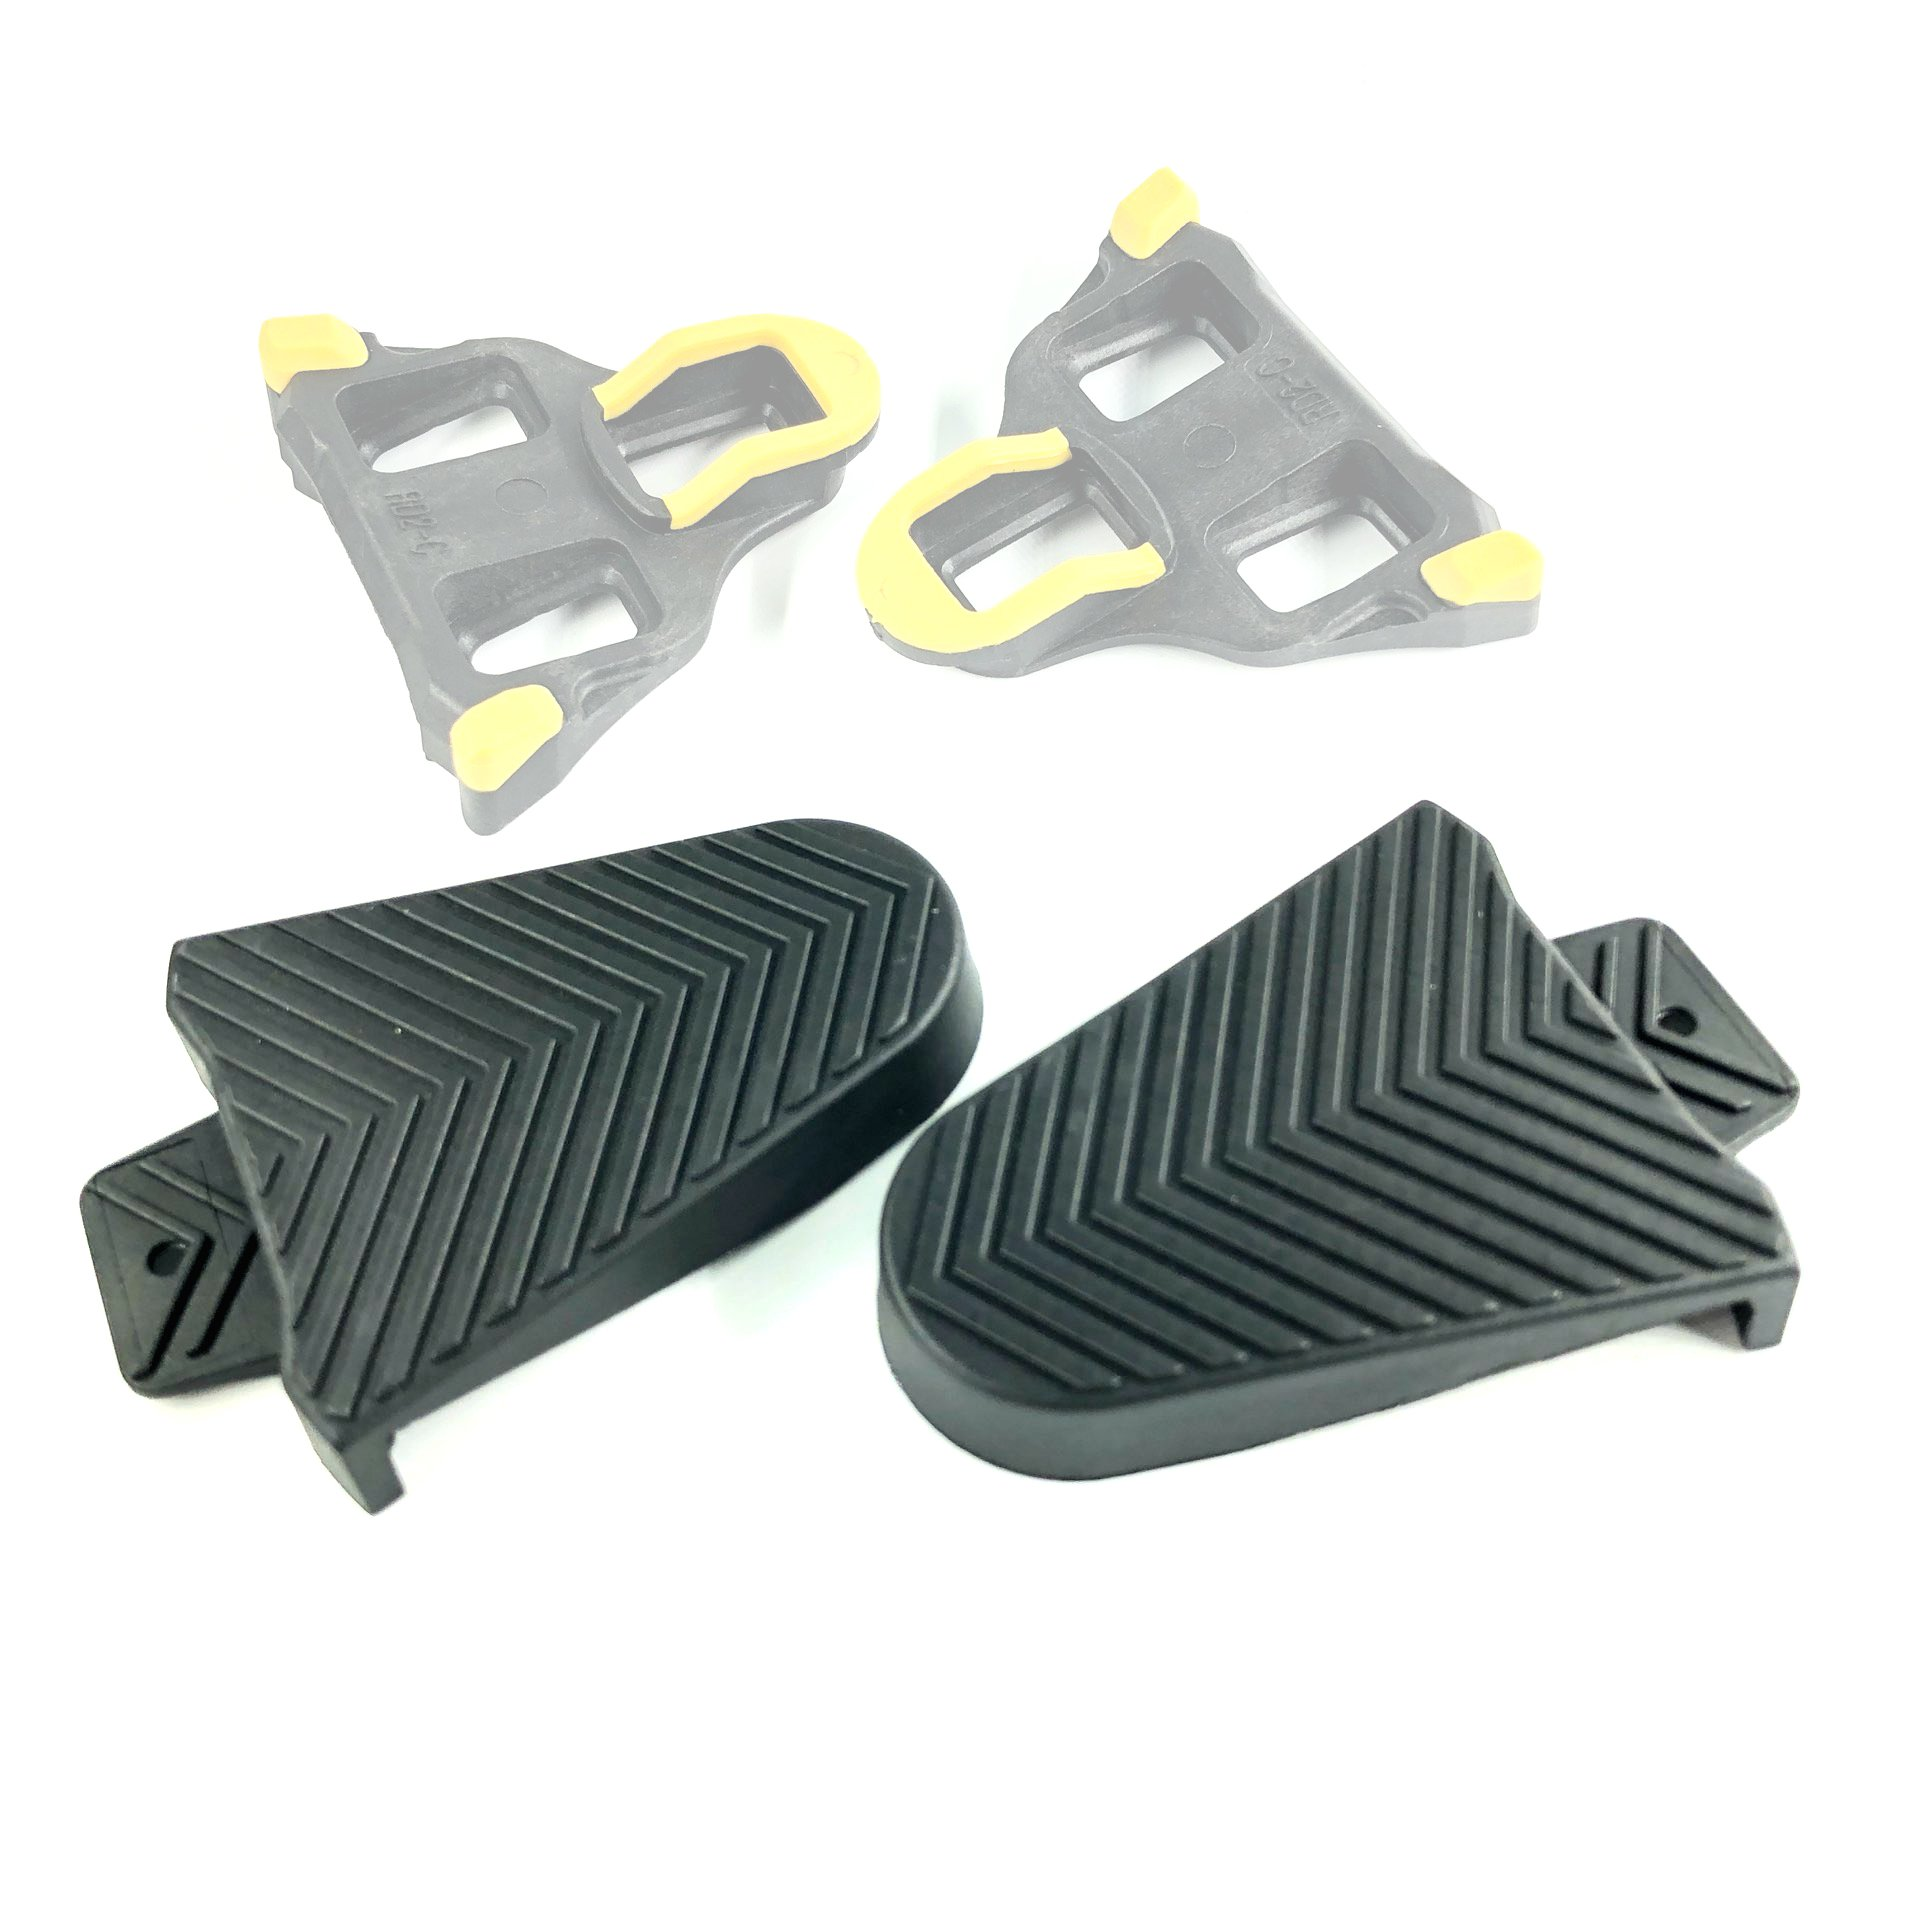 Thinvik Bicycle Shoe Cleat Rubber Cover Set for Shimano SPD-SL Pedal Cleats Systems by Thinvik